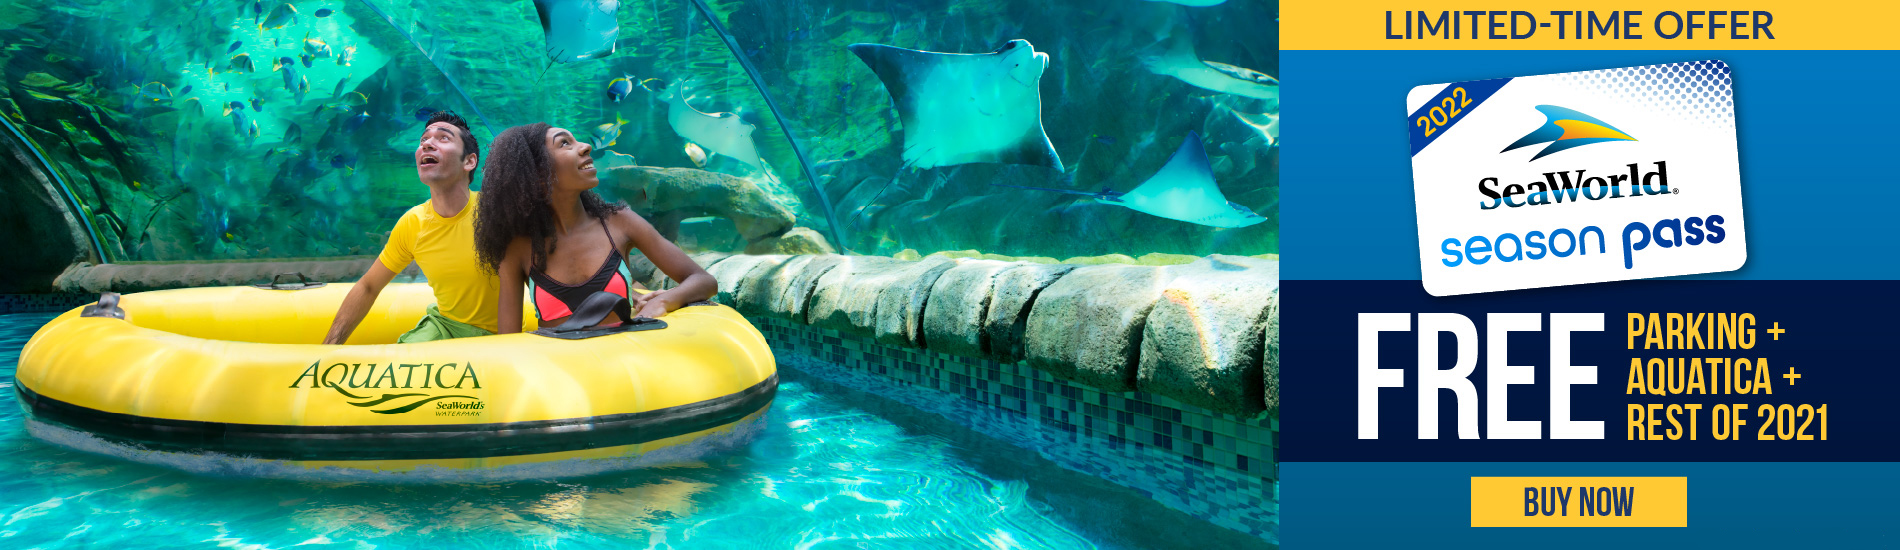 Buy a 2022 Season Pass, Get the Rest of 2021 and Aquatica Free